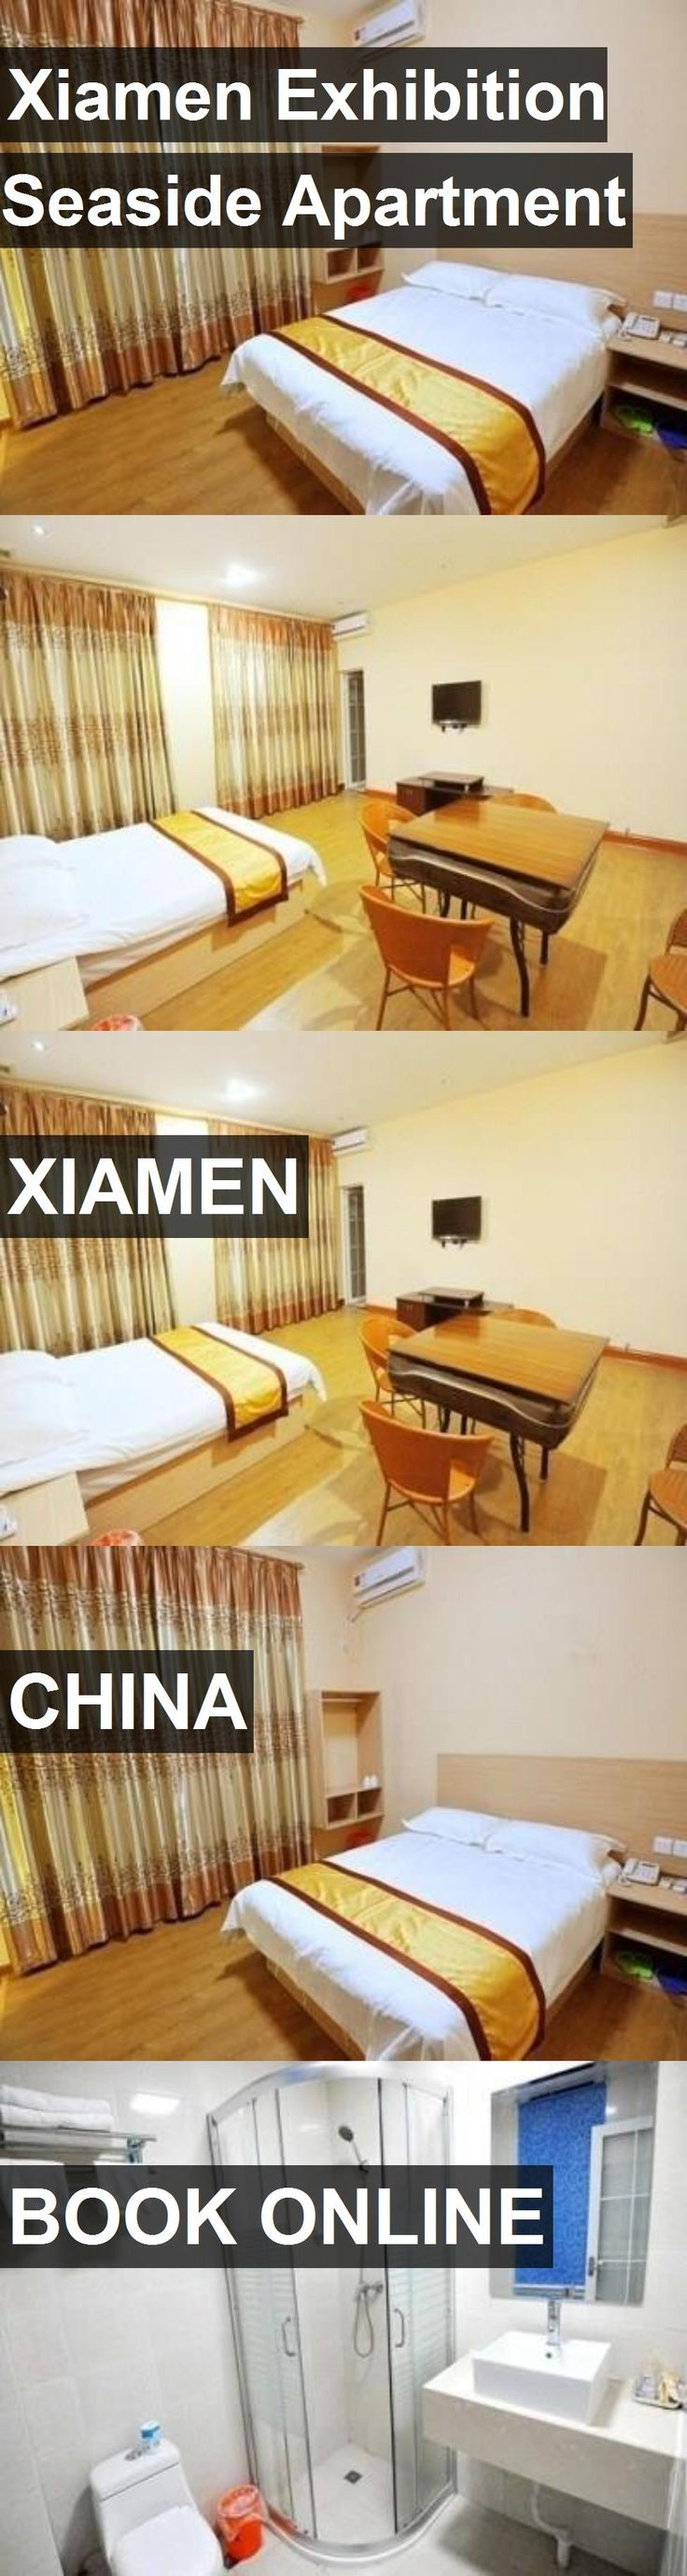 Hotel Xiamen Exhibition Seaside Apartment in Xiamen, China. For more information, photos, reviews and best prices please follow the link. #China #Xiamen #XiamenExhibitionSeasideApartment #hotel #travel #vacation